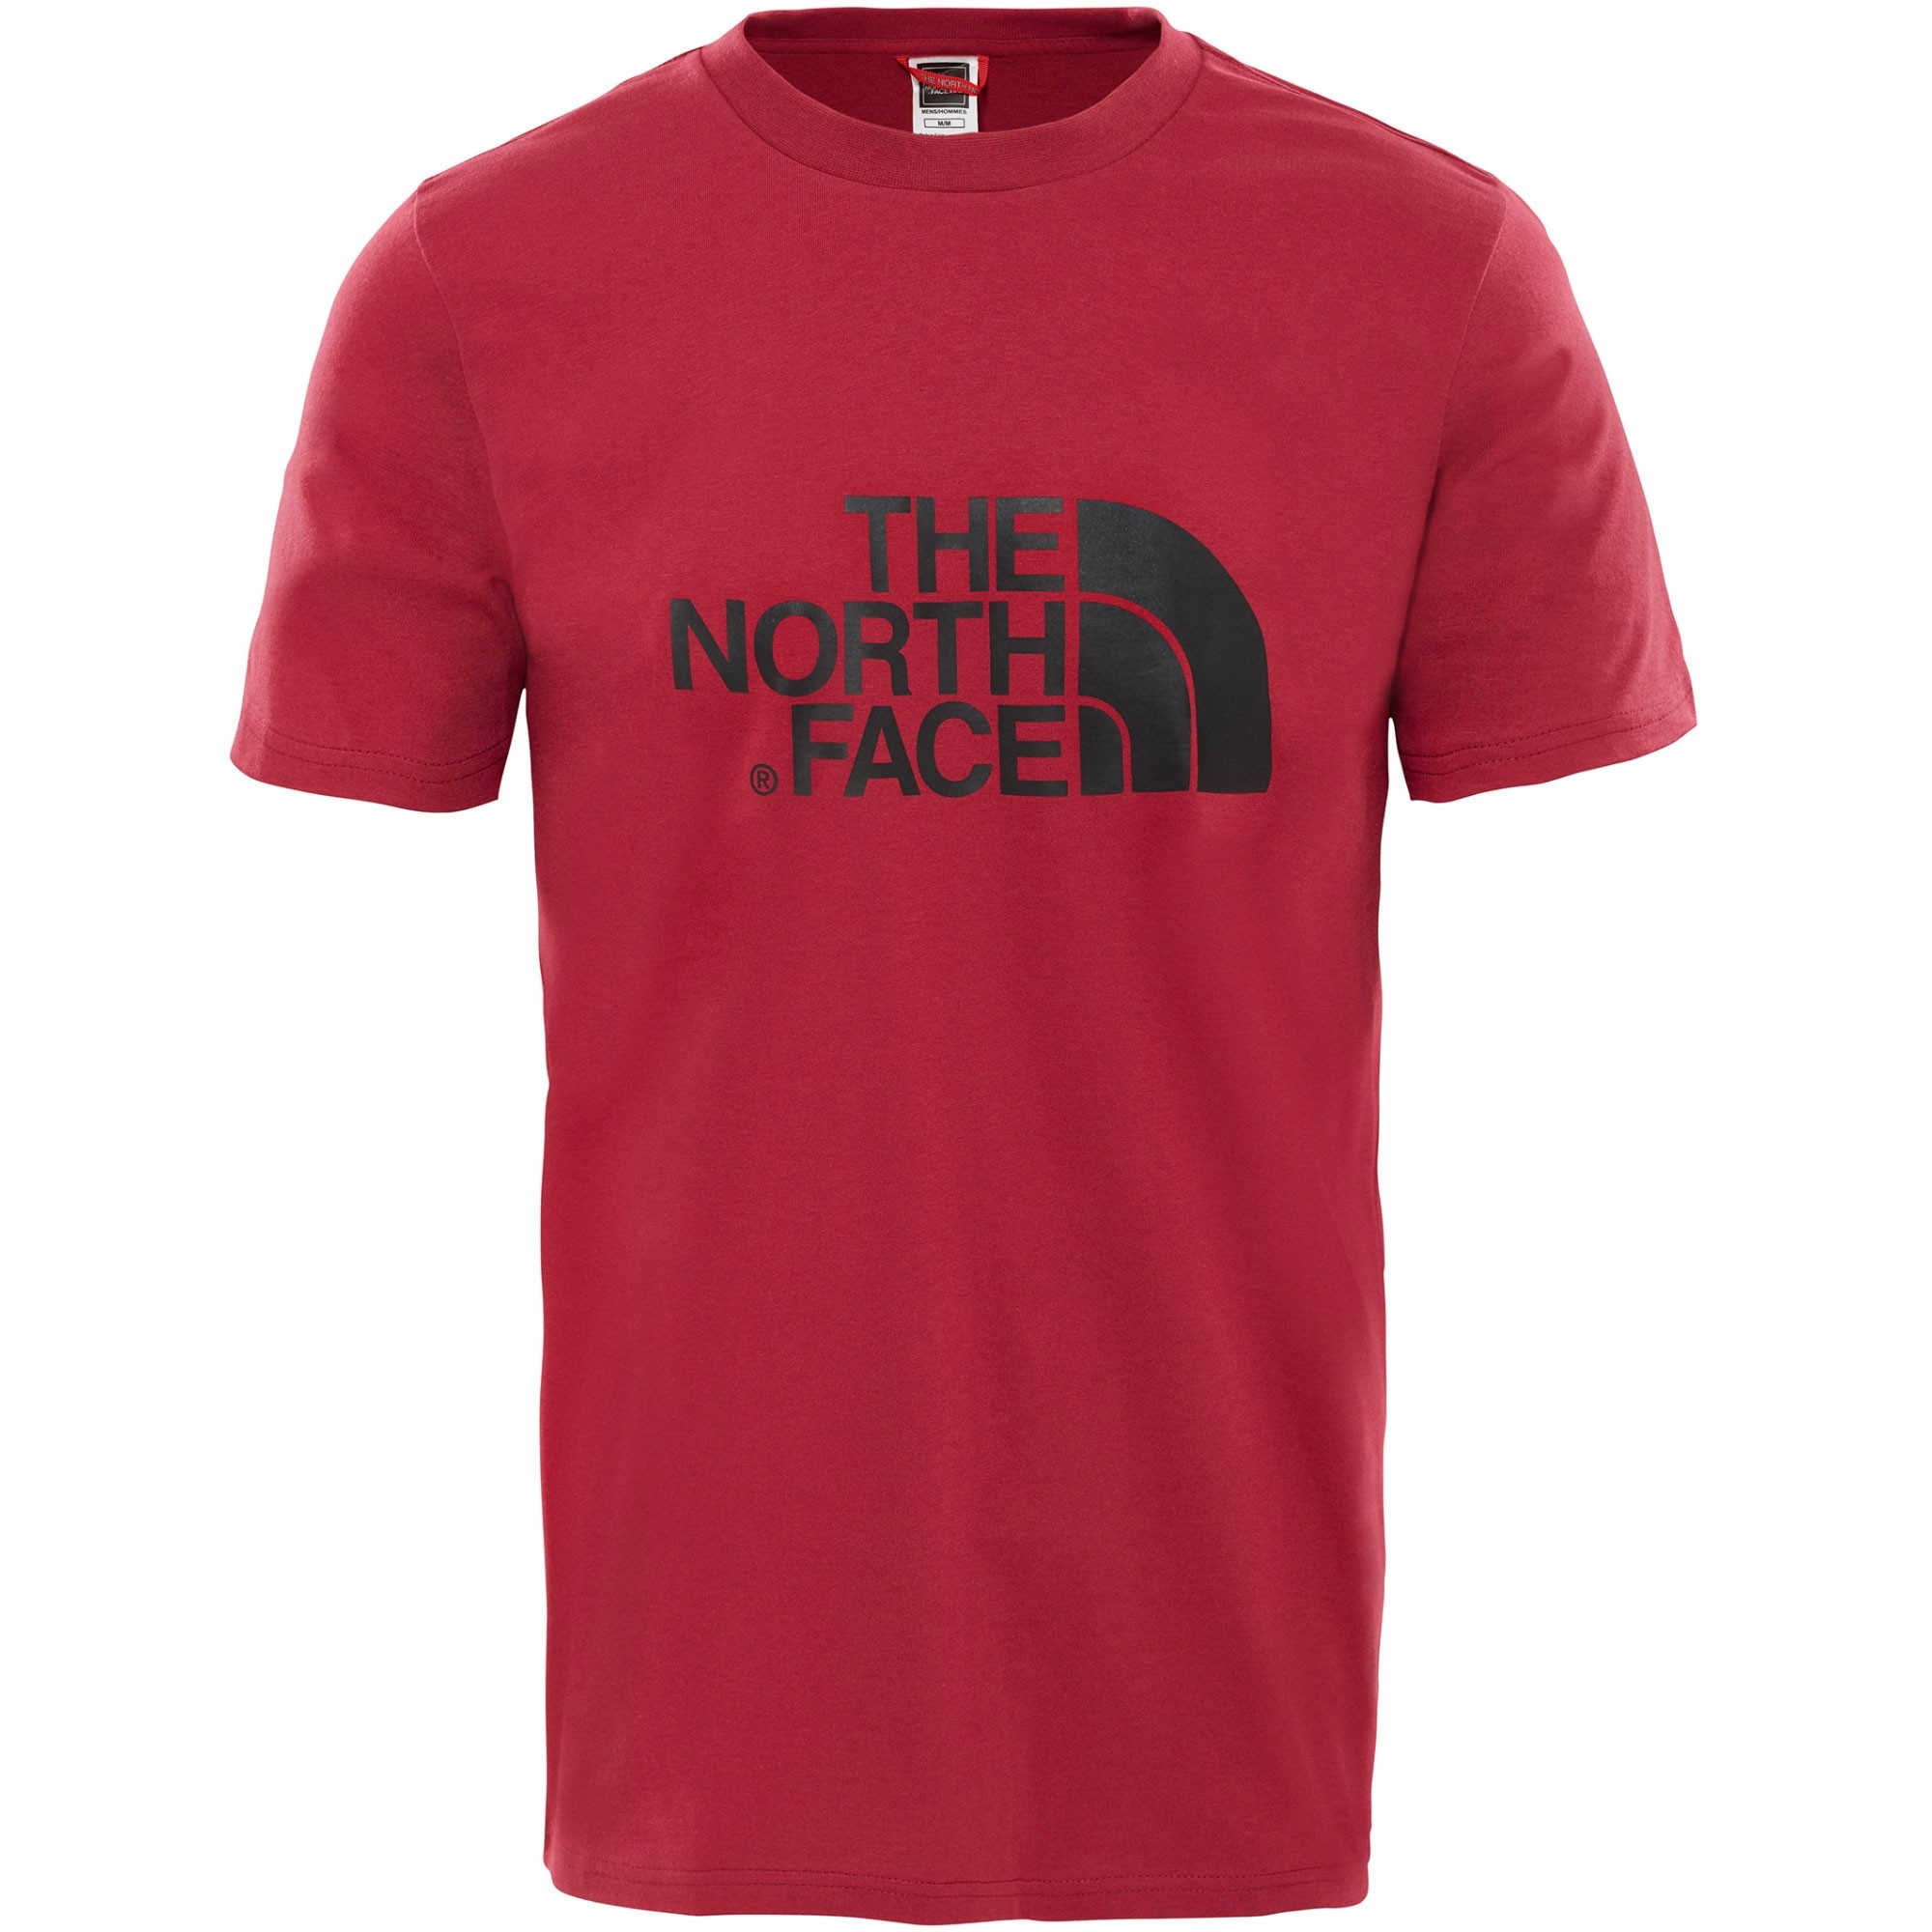 The North Face Short Sleeved Easy Tee - Rumba Red